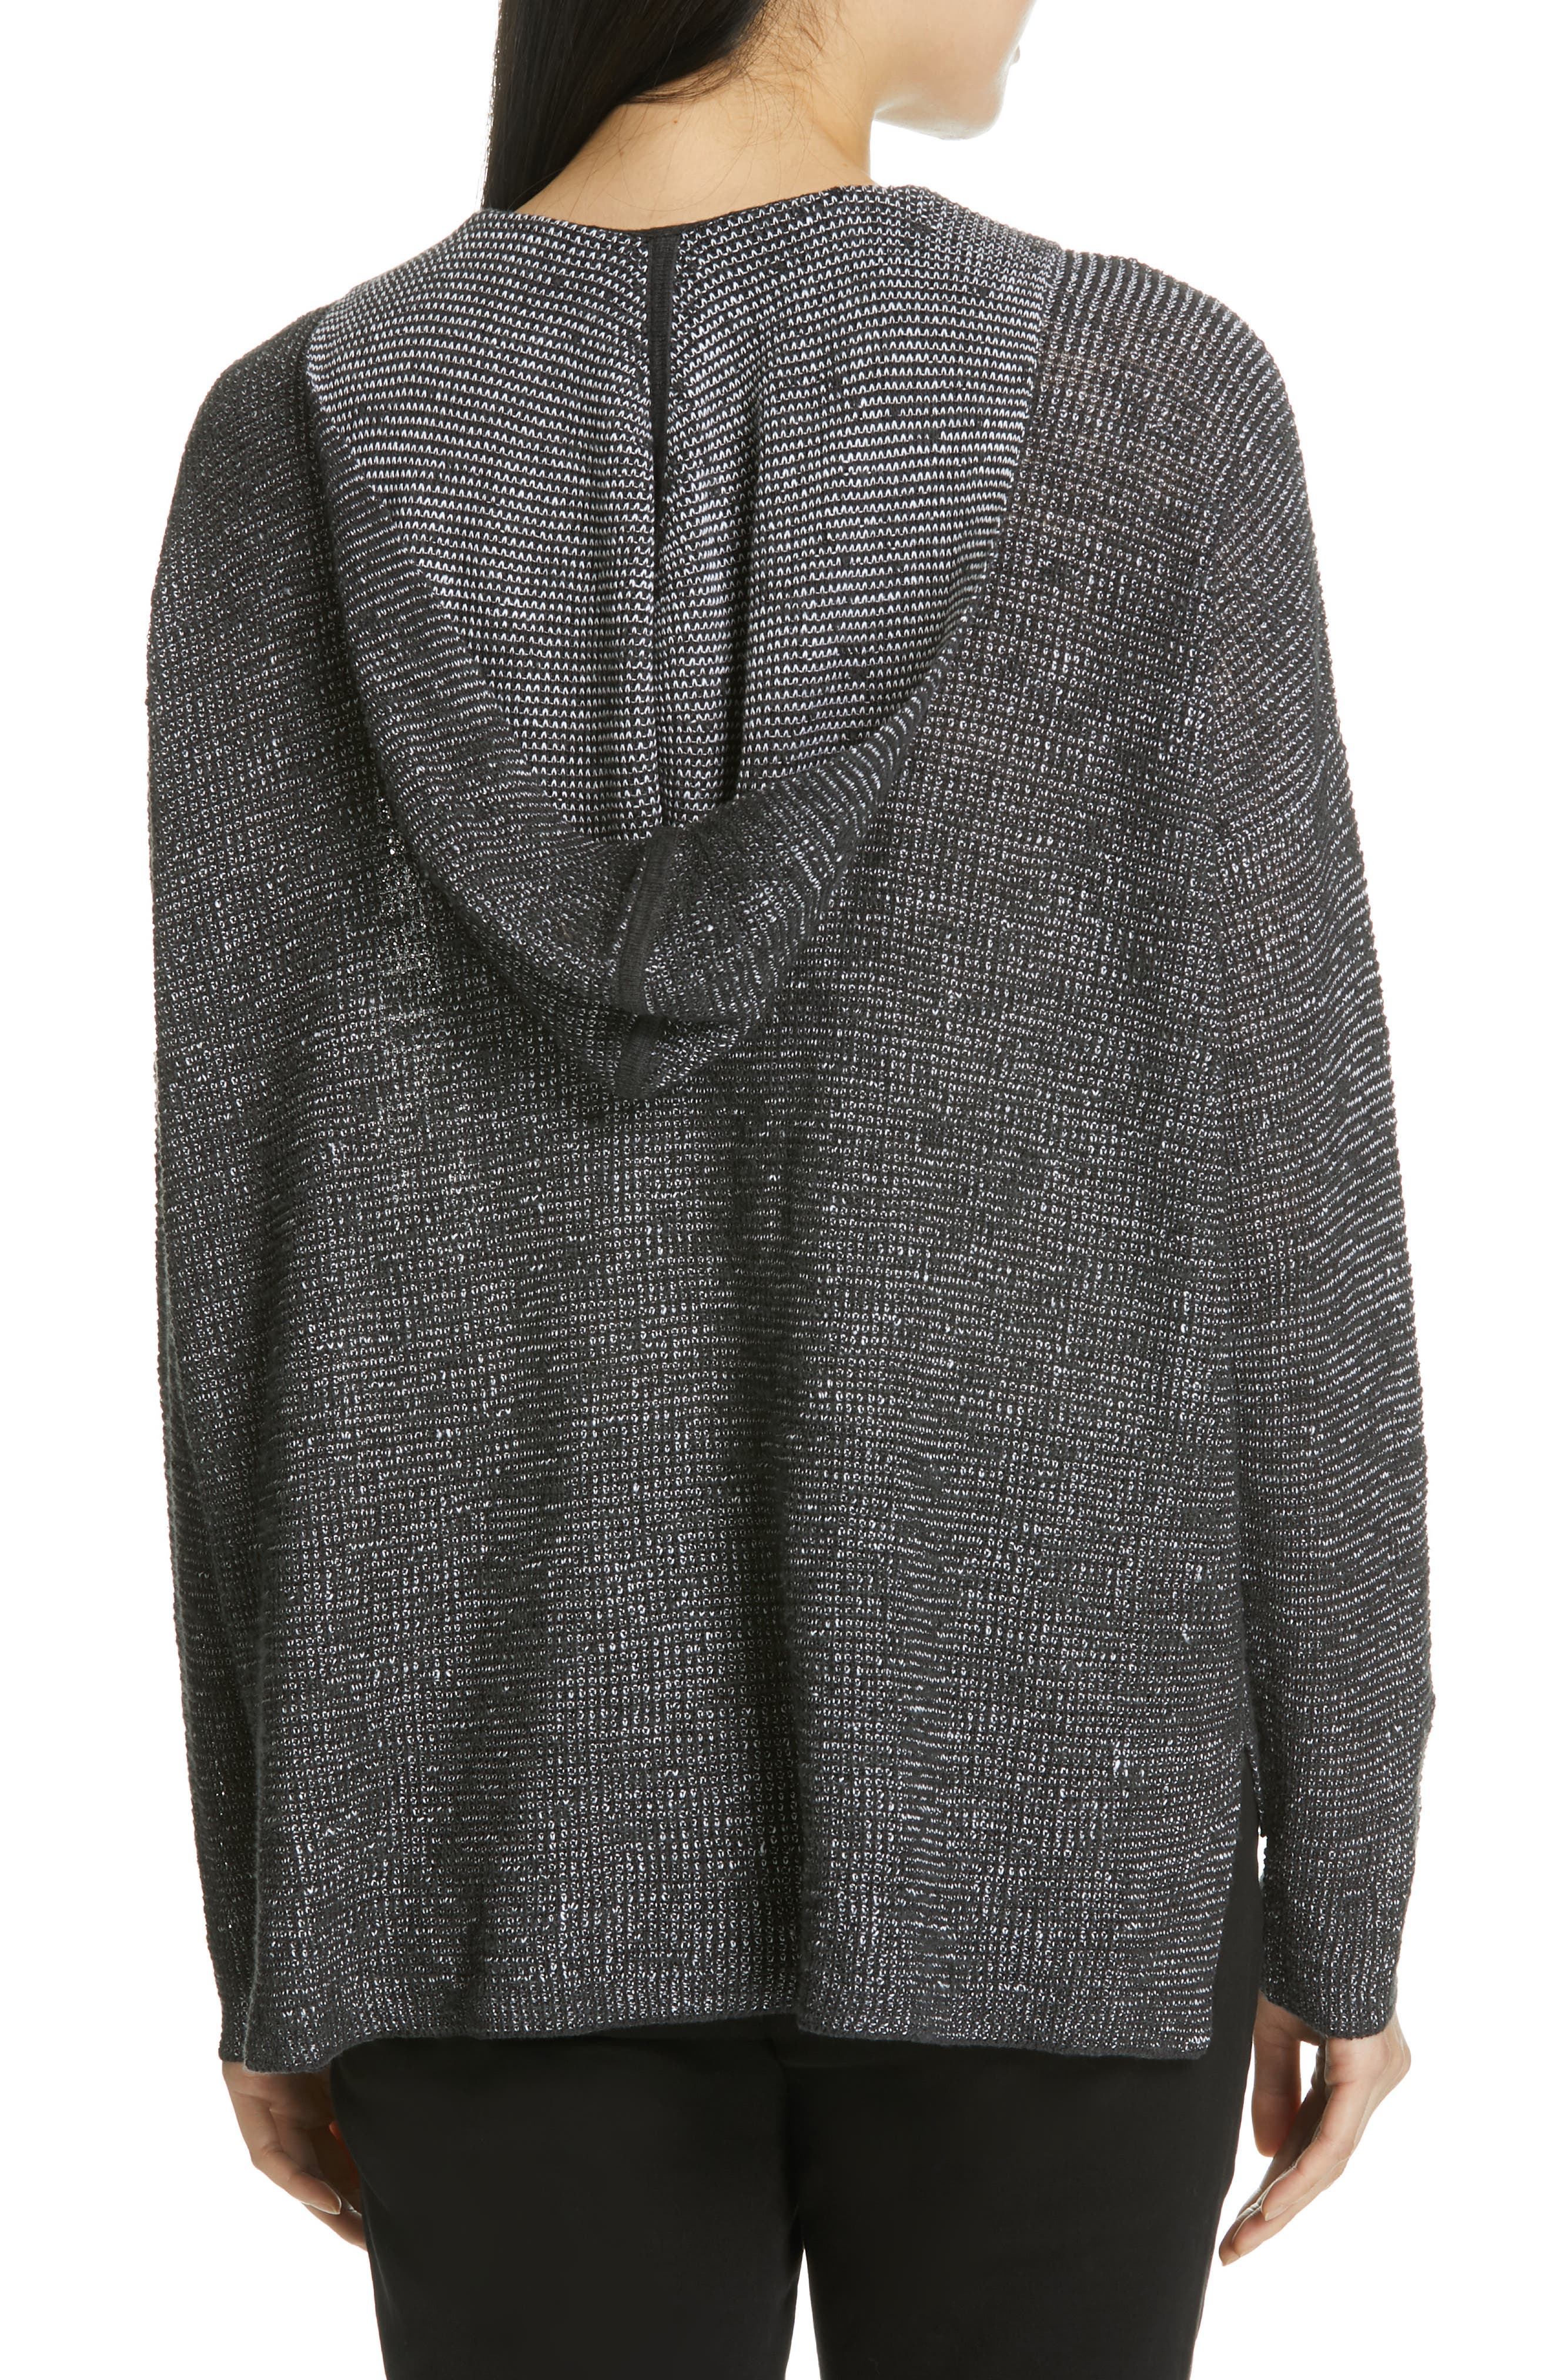 EILEEN FISHER, Organic Linen & Cotton Boxy Hooded Top, Alternate thumbnail 2, color, CHARCOAL